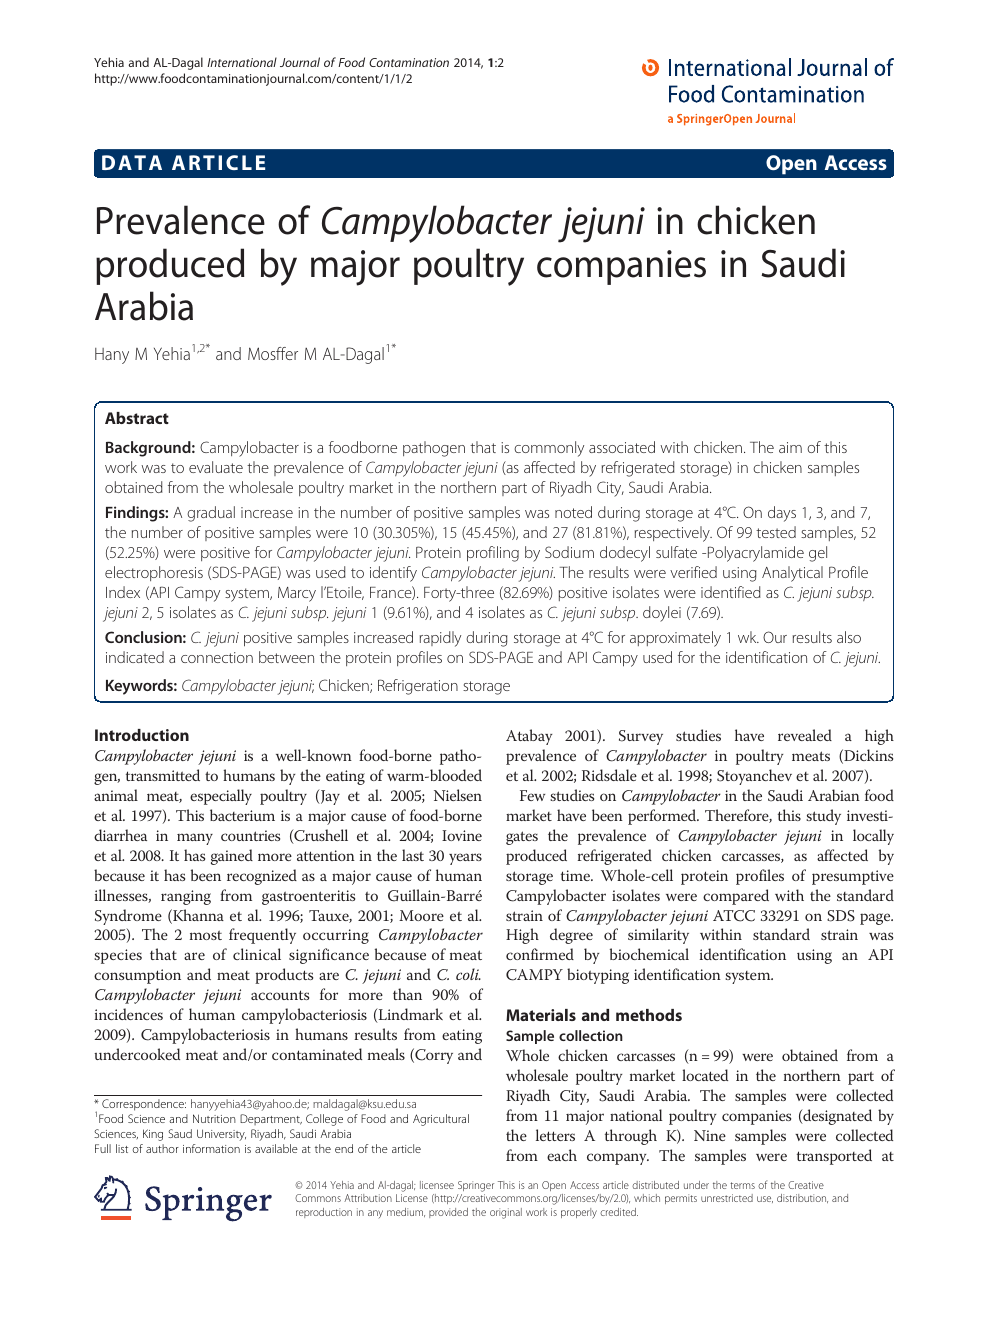 Prevalence of Campylobacter jejuni in chicken produced by